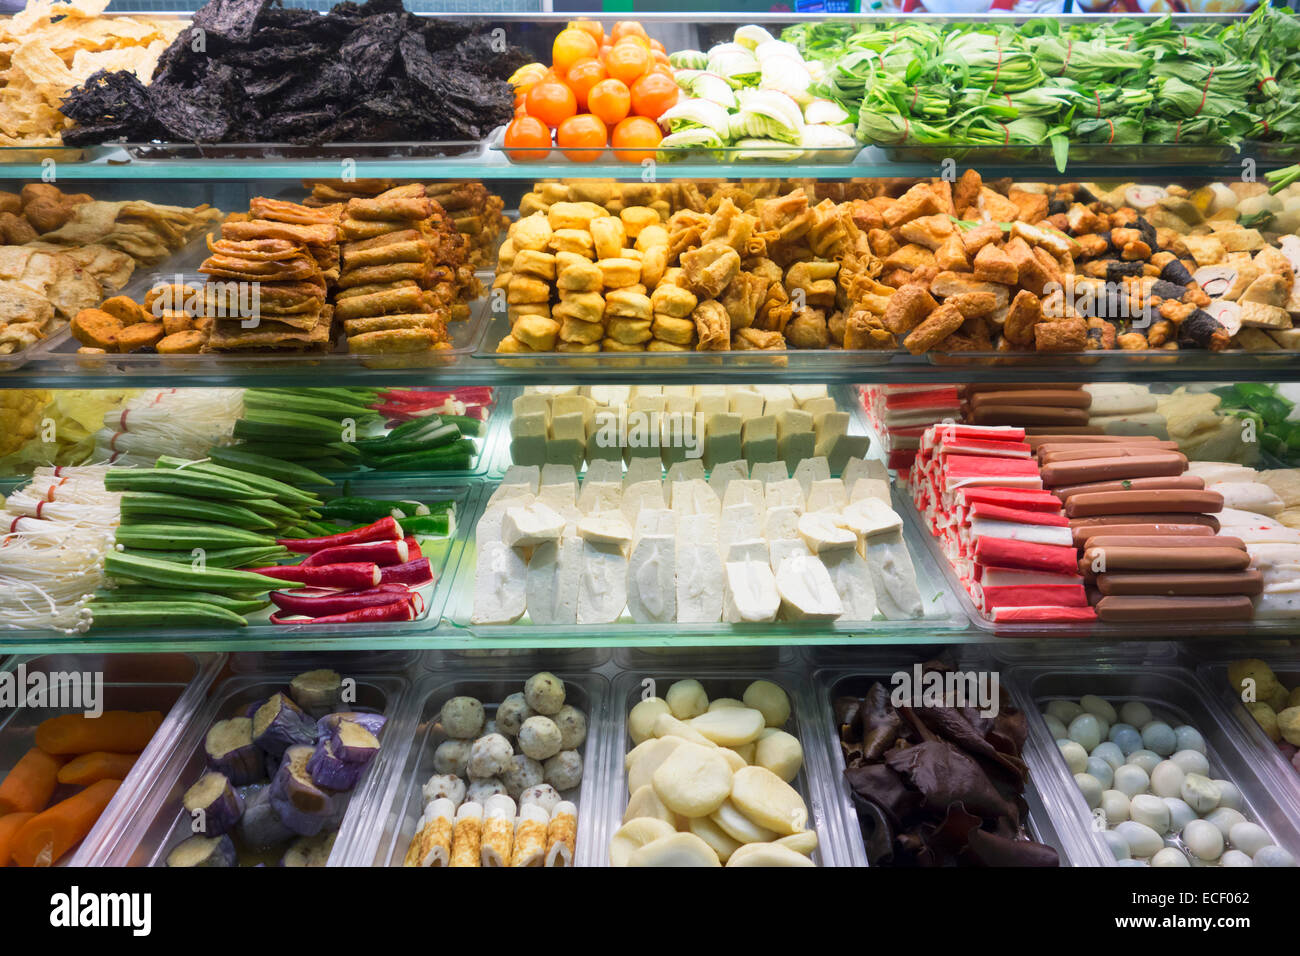 Ingredients for a delicious Yong Tau Foo Chinese meal of fish paste stuffed into vegetables and tofu with hot spicy - Stock Image